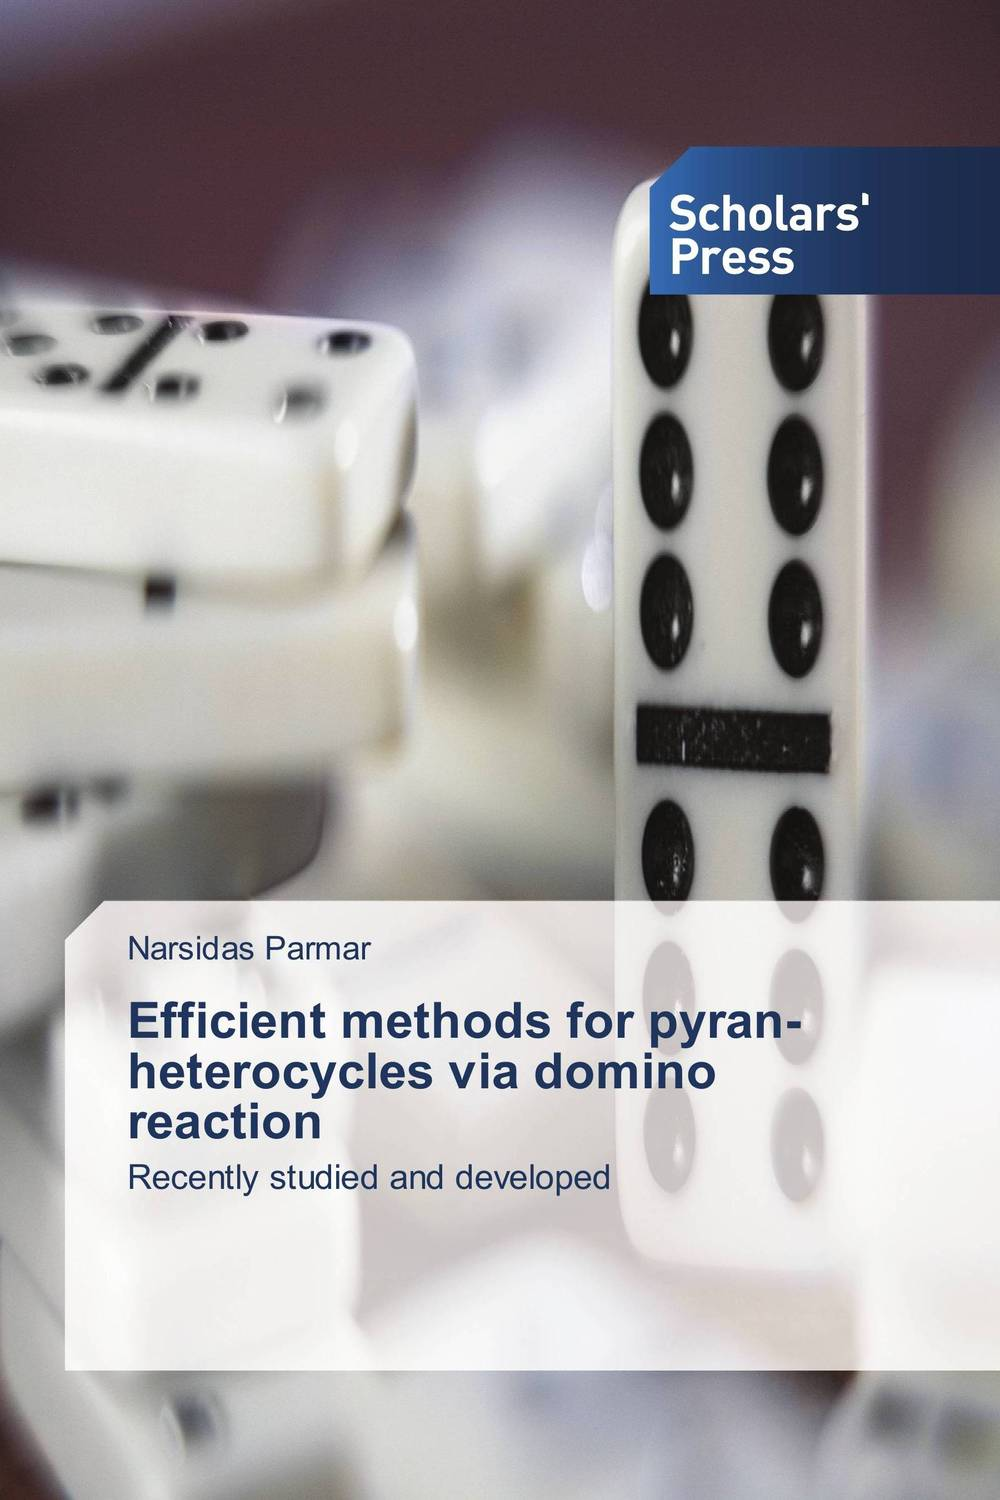 Efficient methods for pyran-heterocycles via domino reaction zipower pm 5149